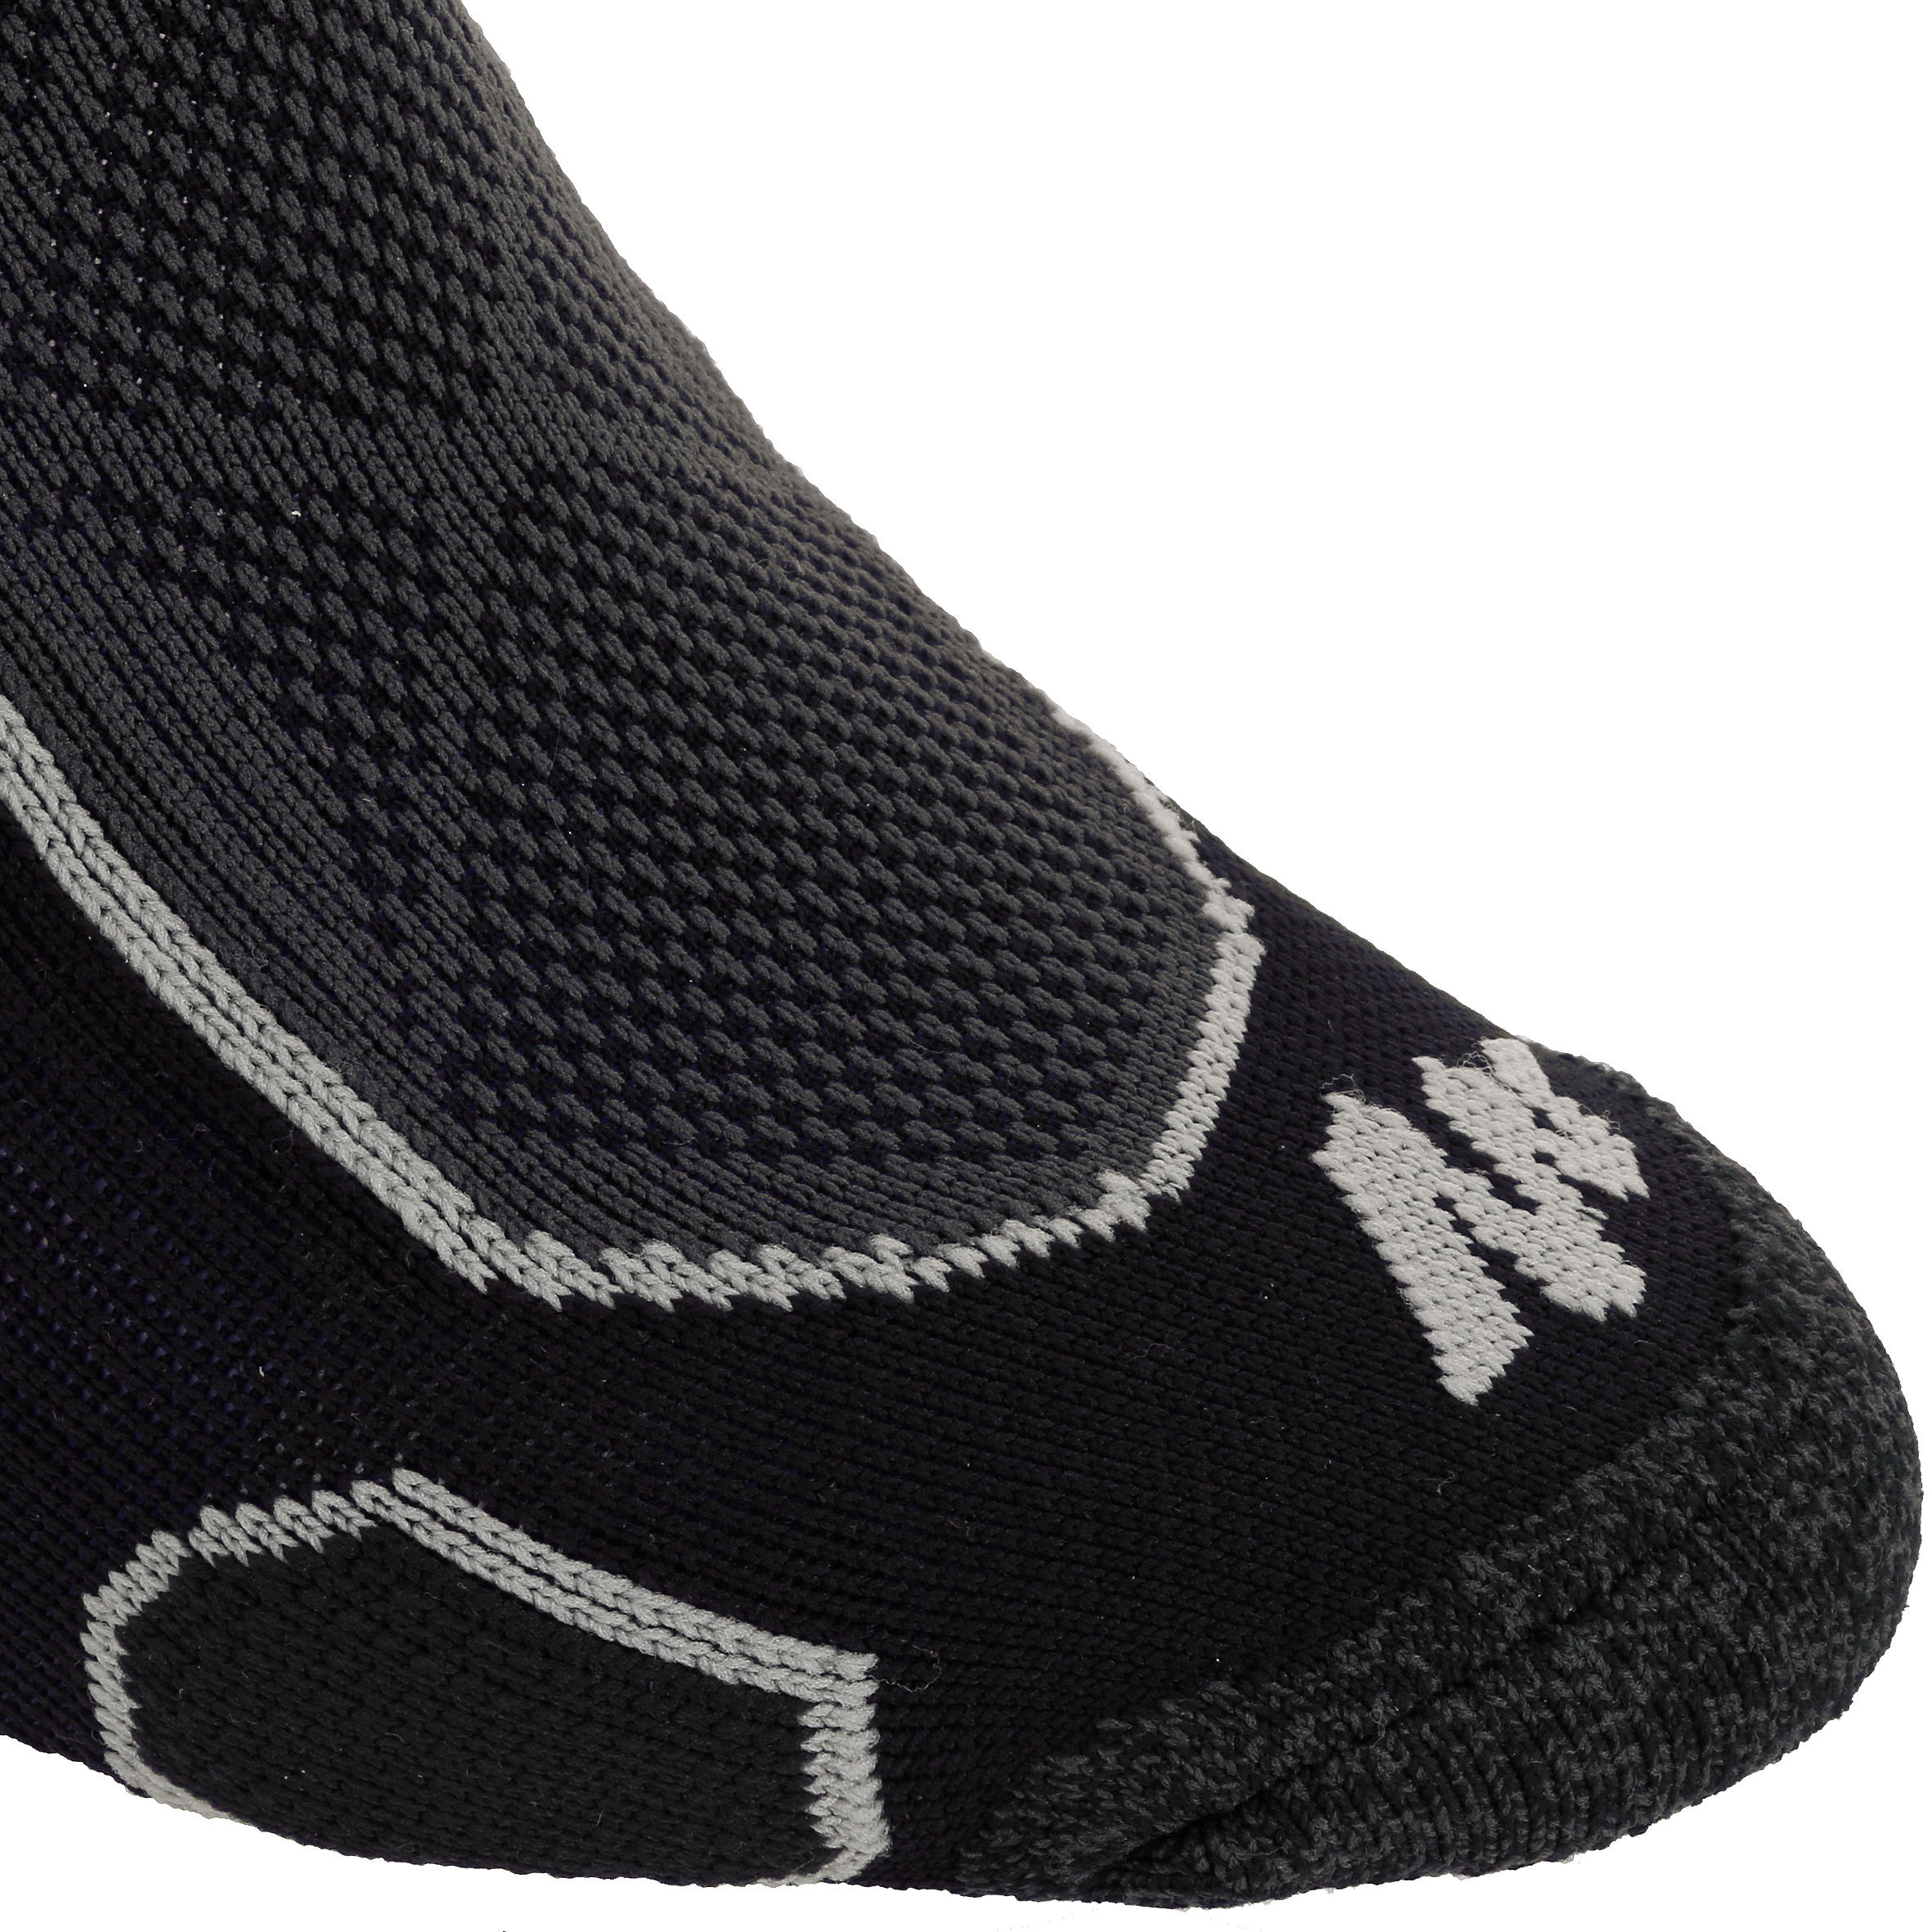 Mid upper Mountain Hiking Socks. Forclaz 500 2 pairs - Black